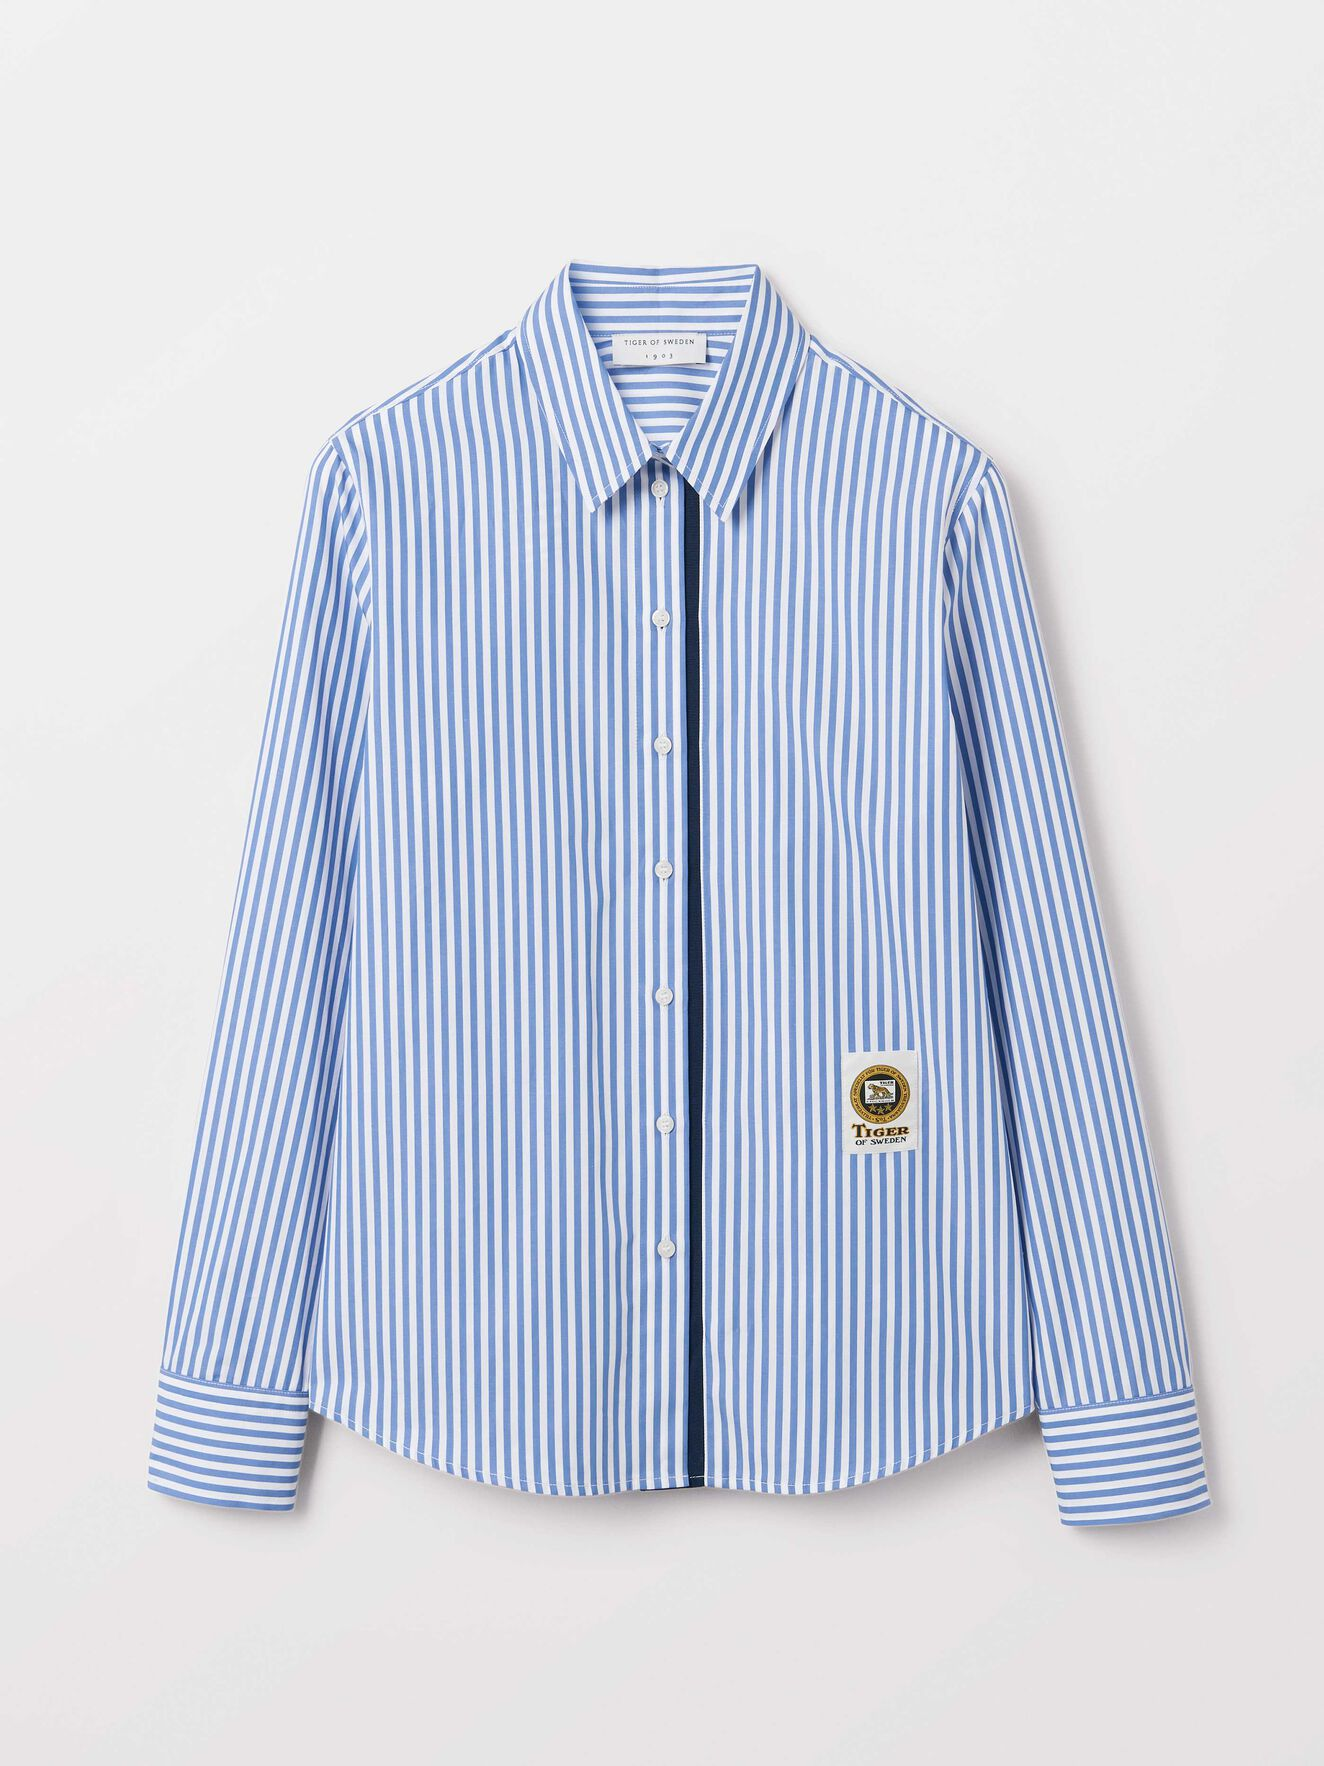 Ris Shirt in Blue from Tiger of Sweden